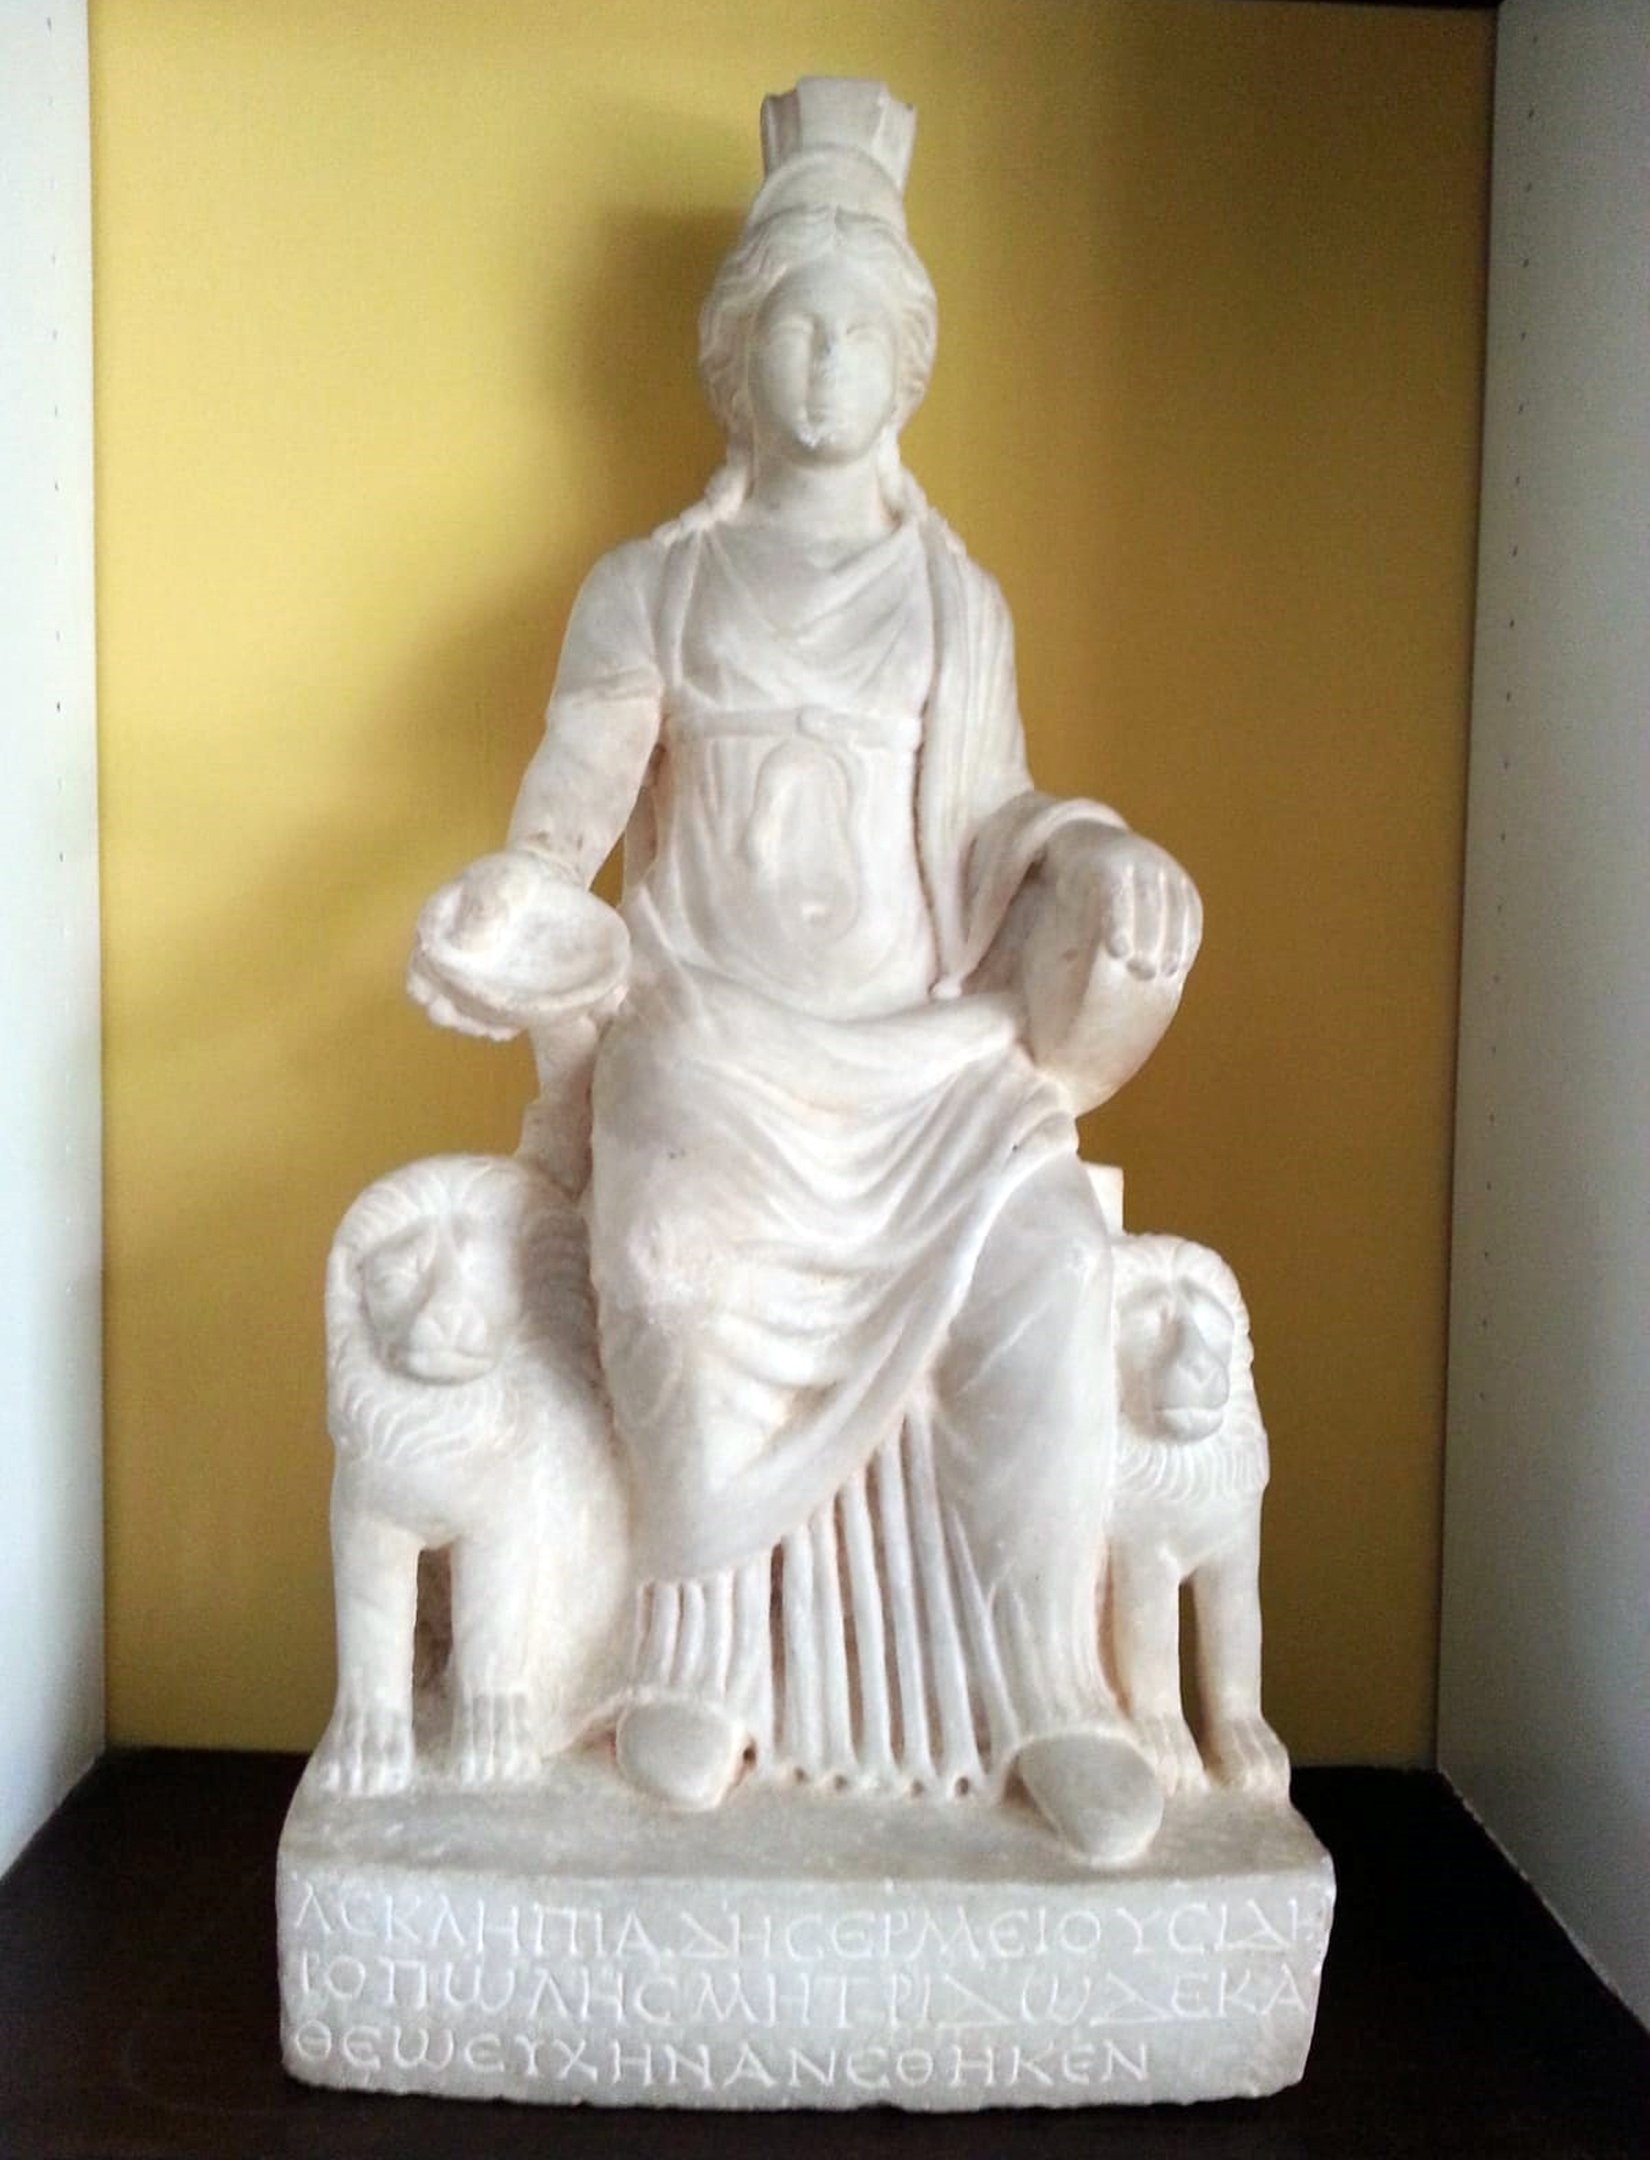 The marble statue of Cybele features lions on either side. (Archive Photo)